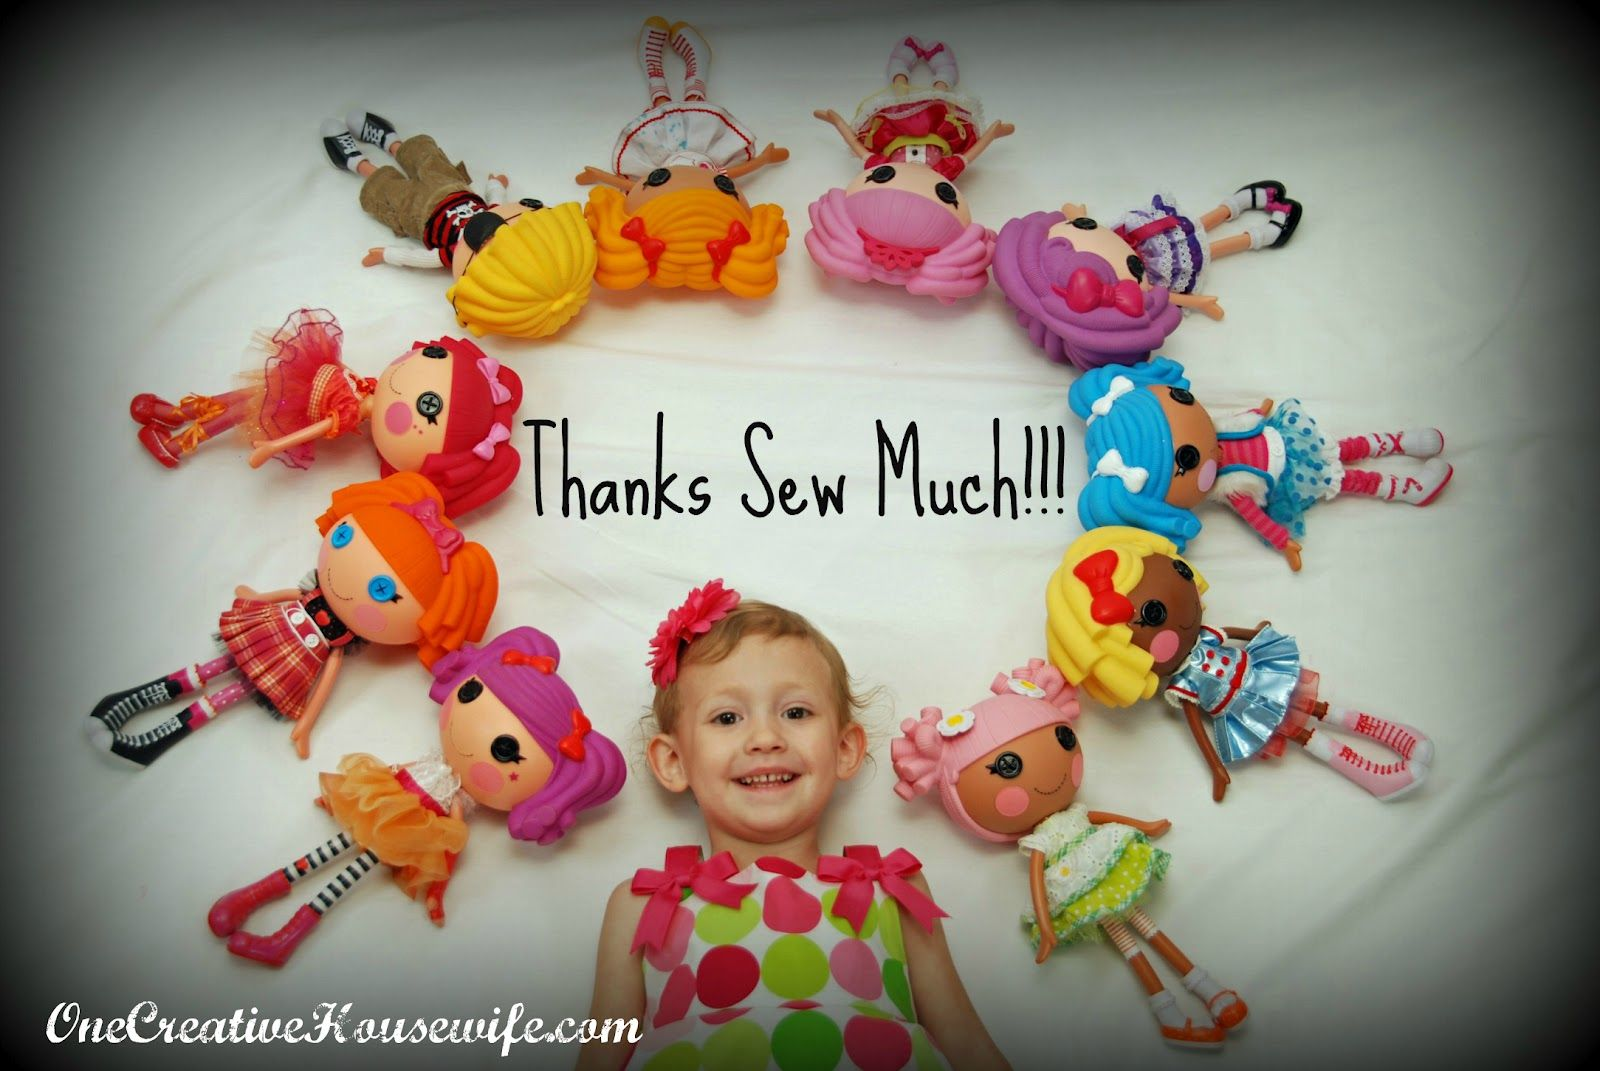 Lalaloopsy thank you card card idea by One Creative Housewife.